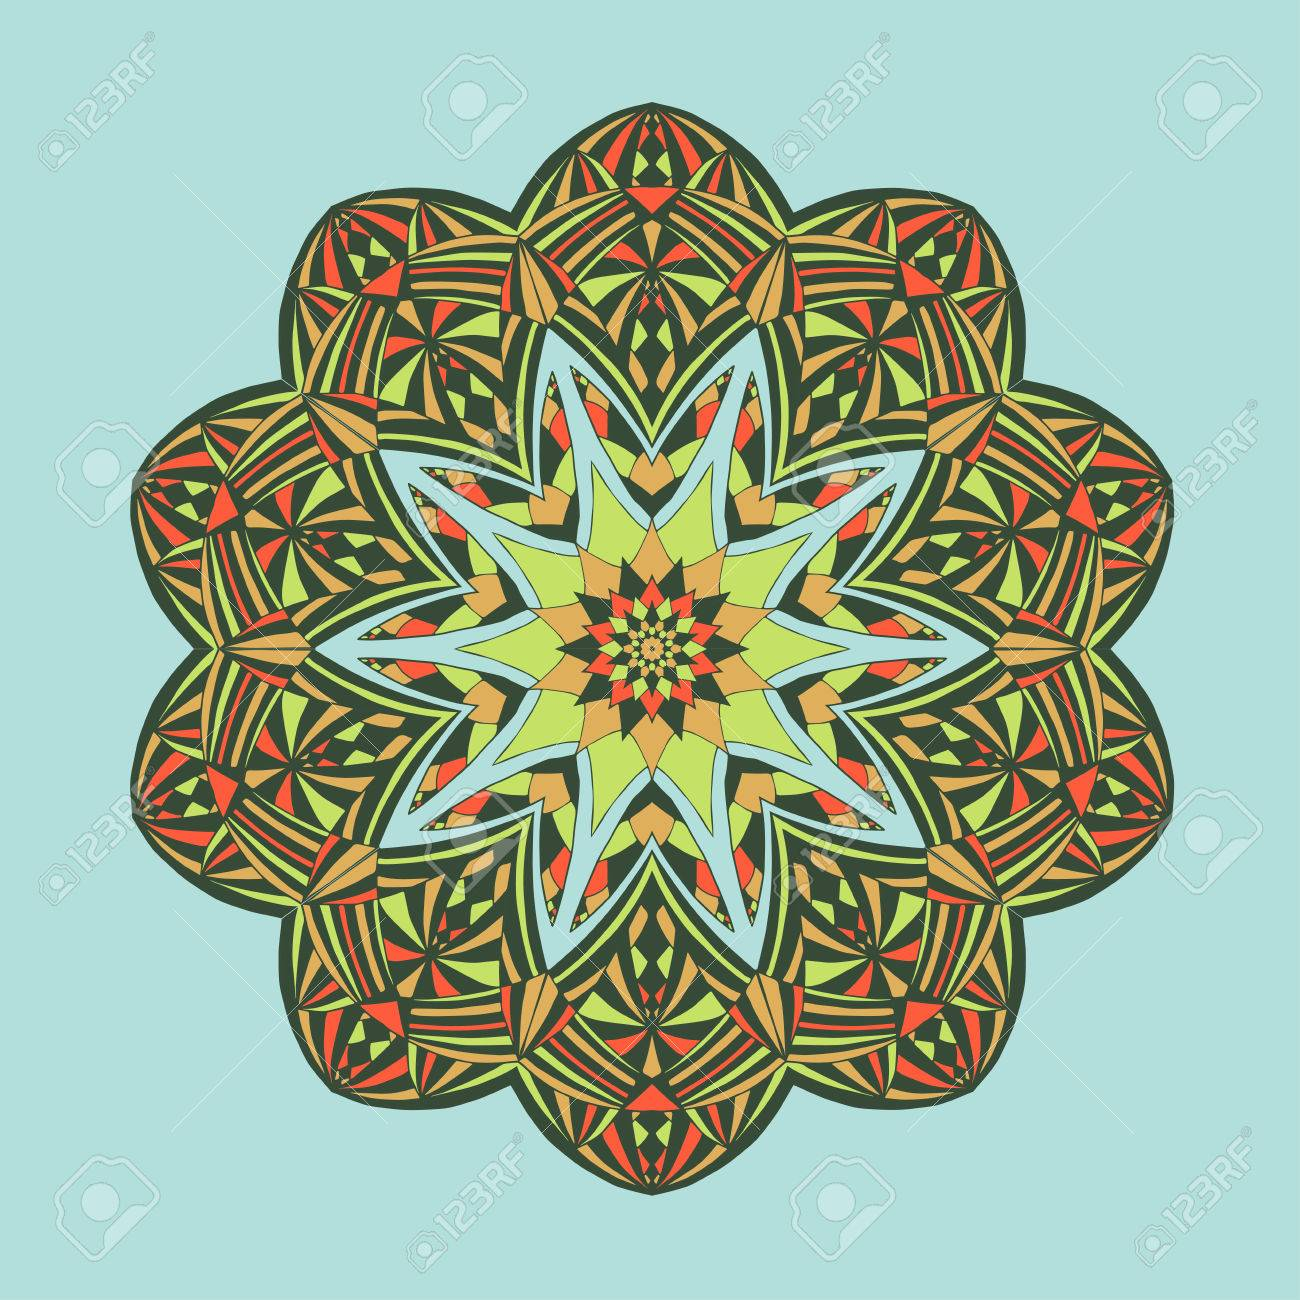 Mandala. Floral Ethnic Abstract Decorative Elements. Hand Drawn ...